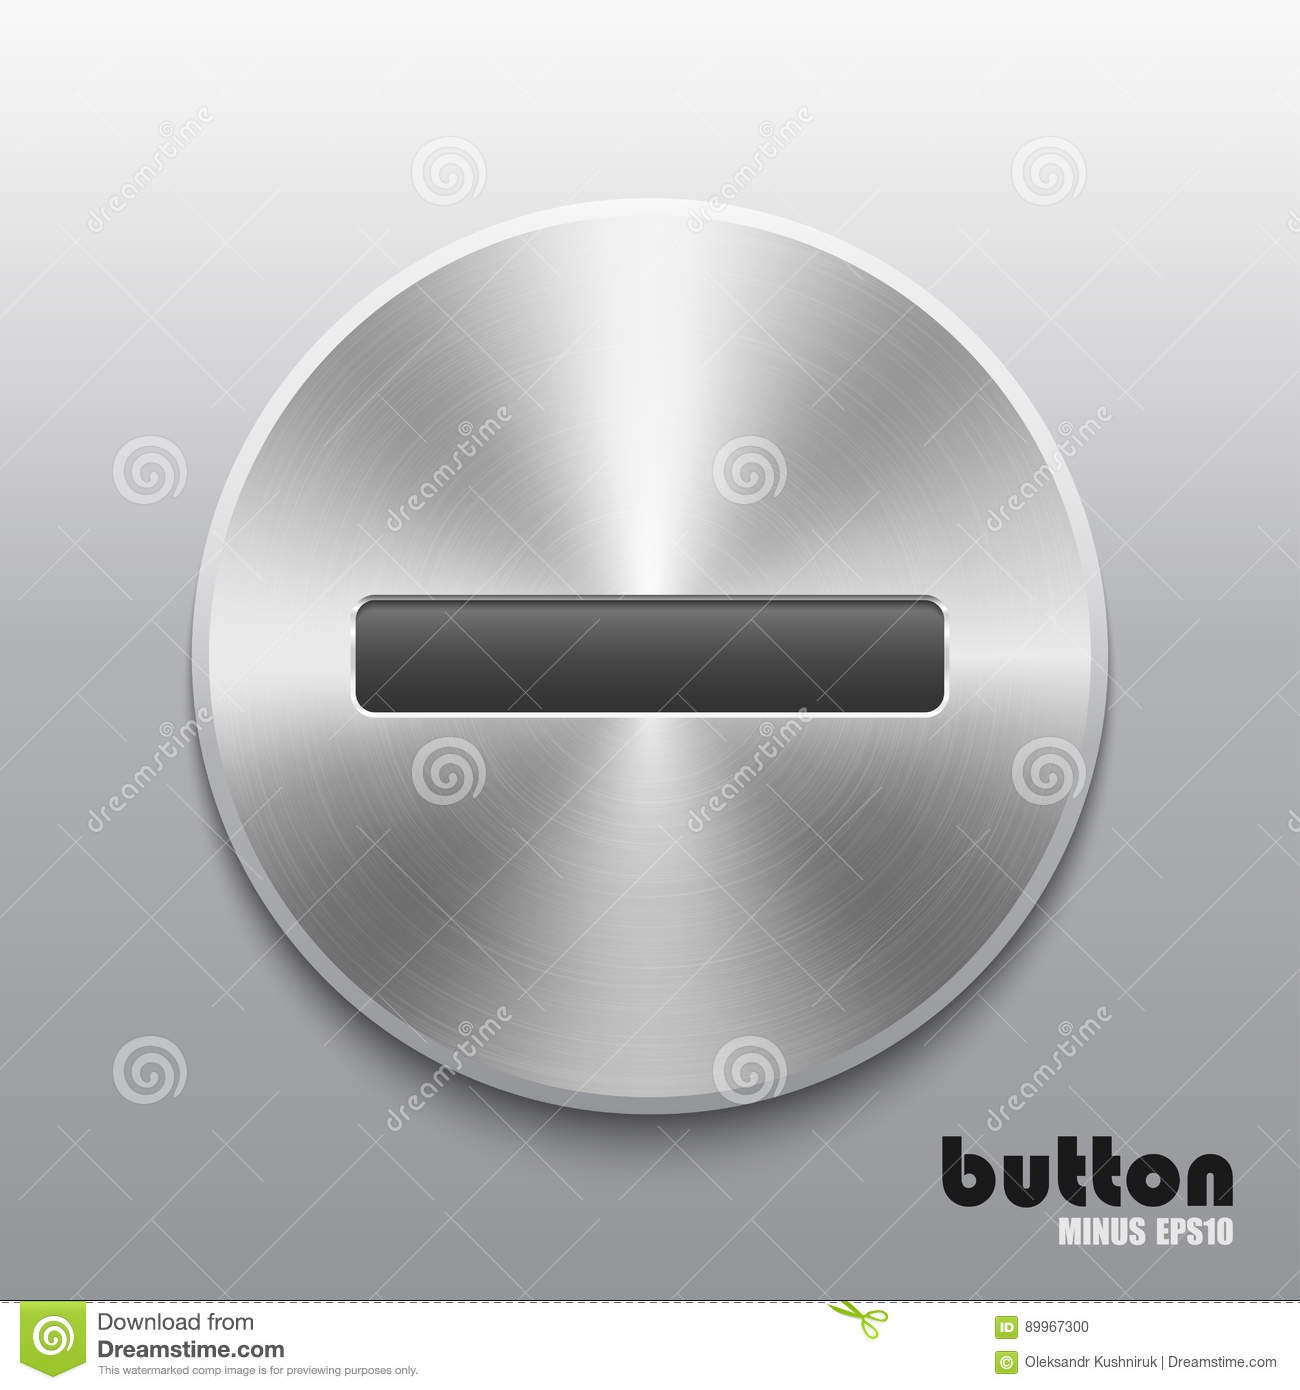 remove level volume button with brushed metal stock vector